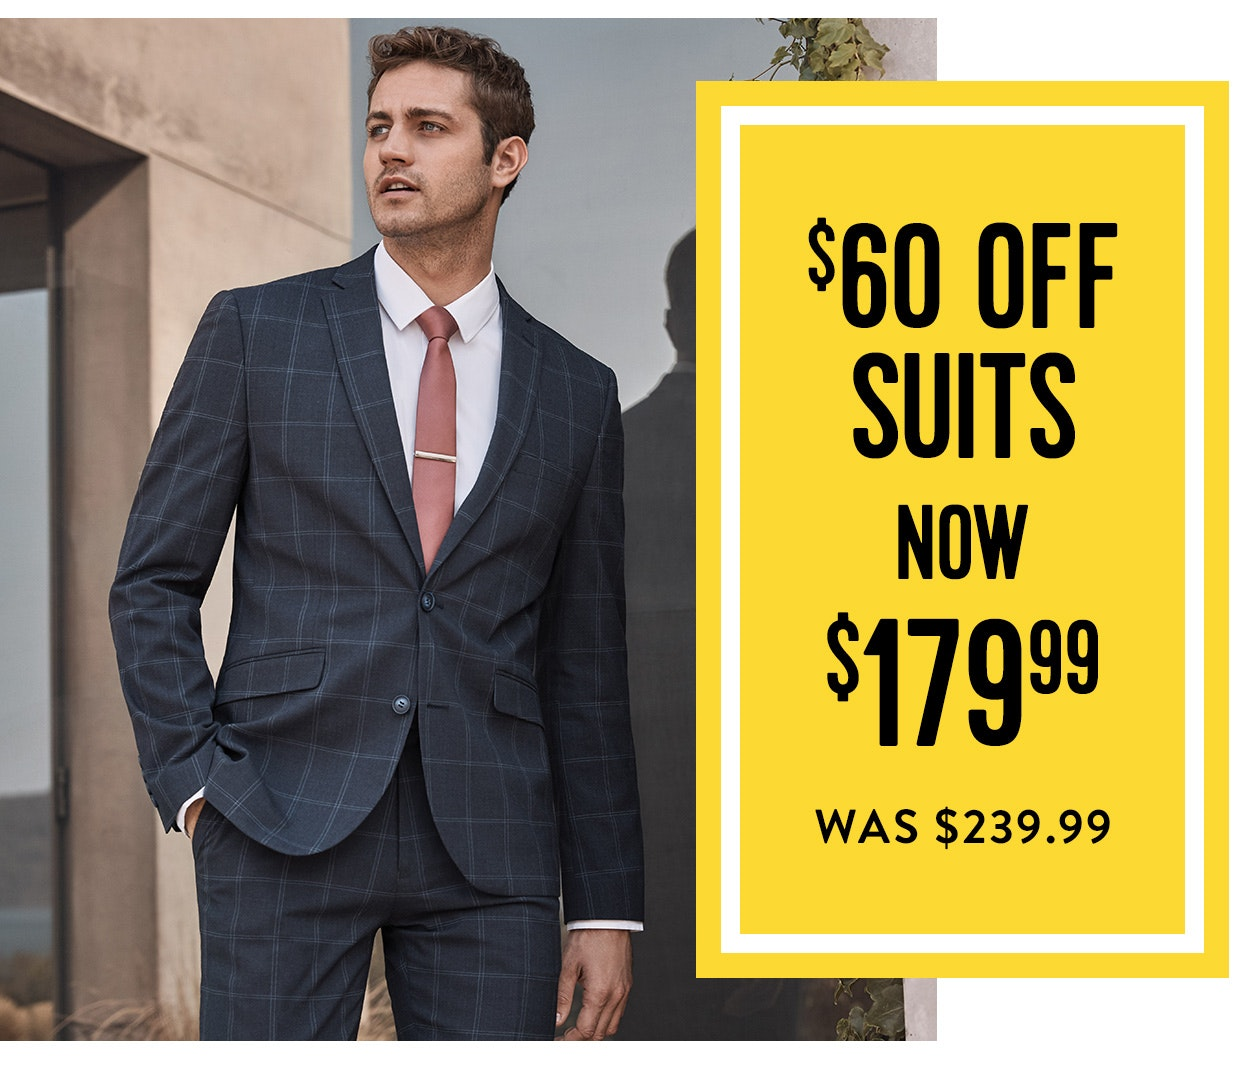 $60 off suits, ow $179.99